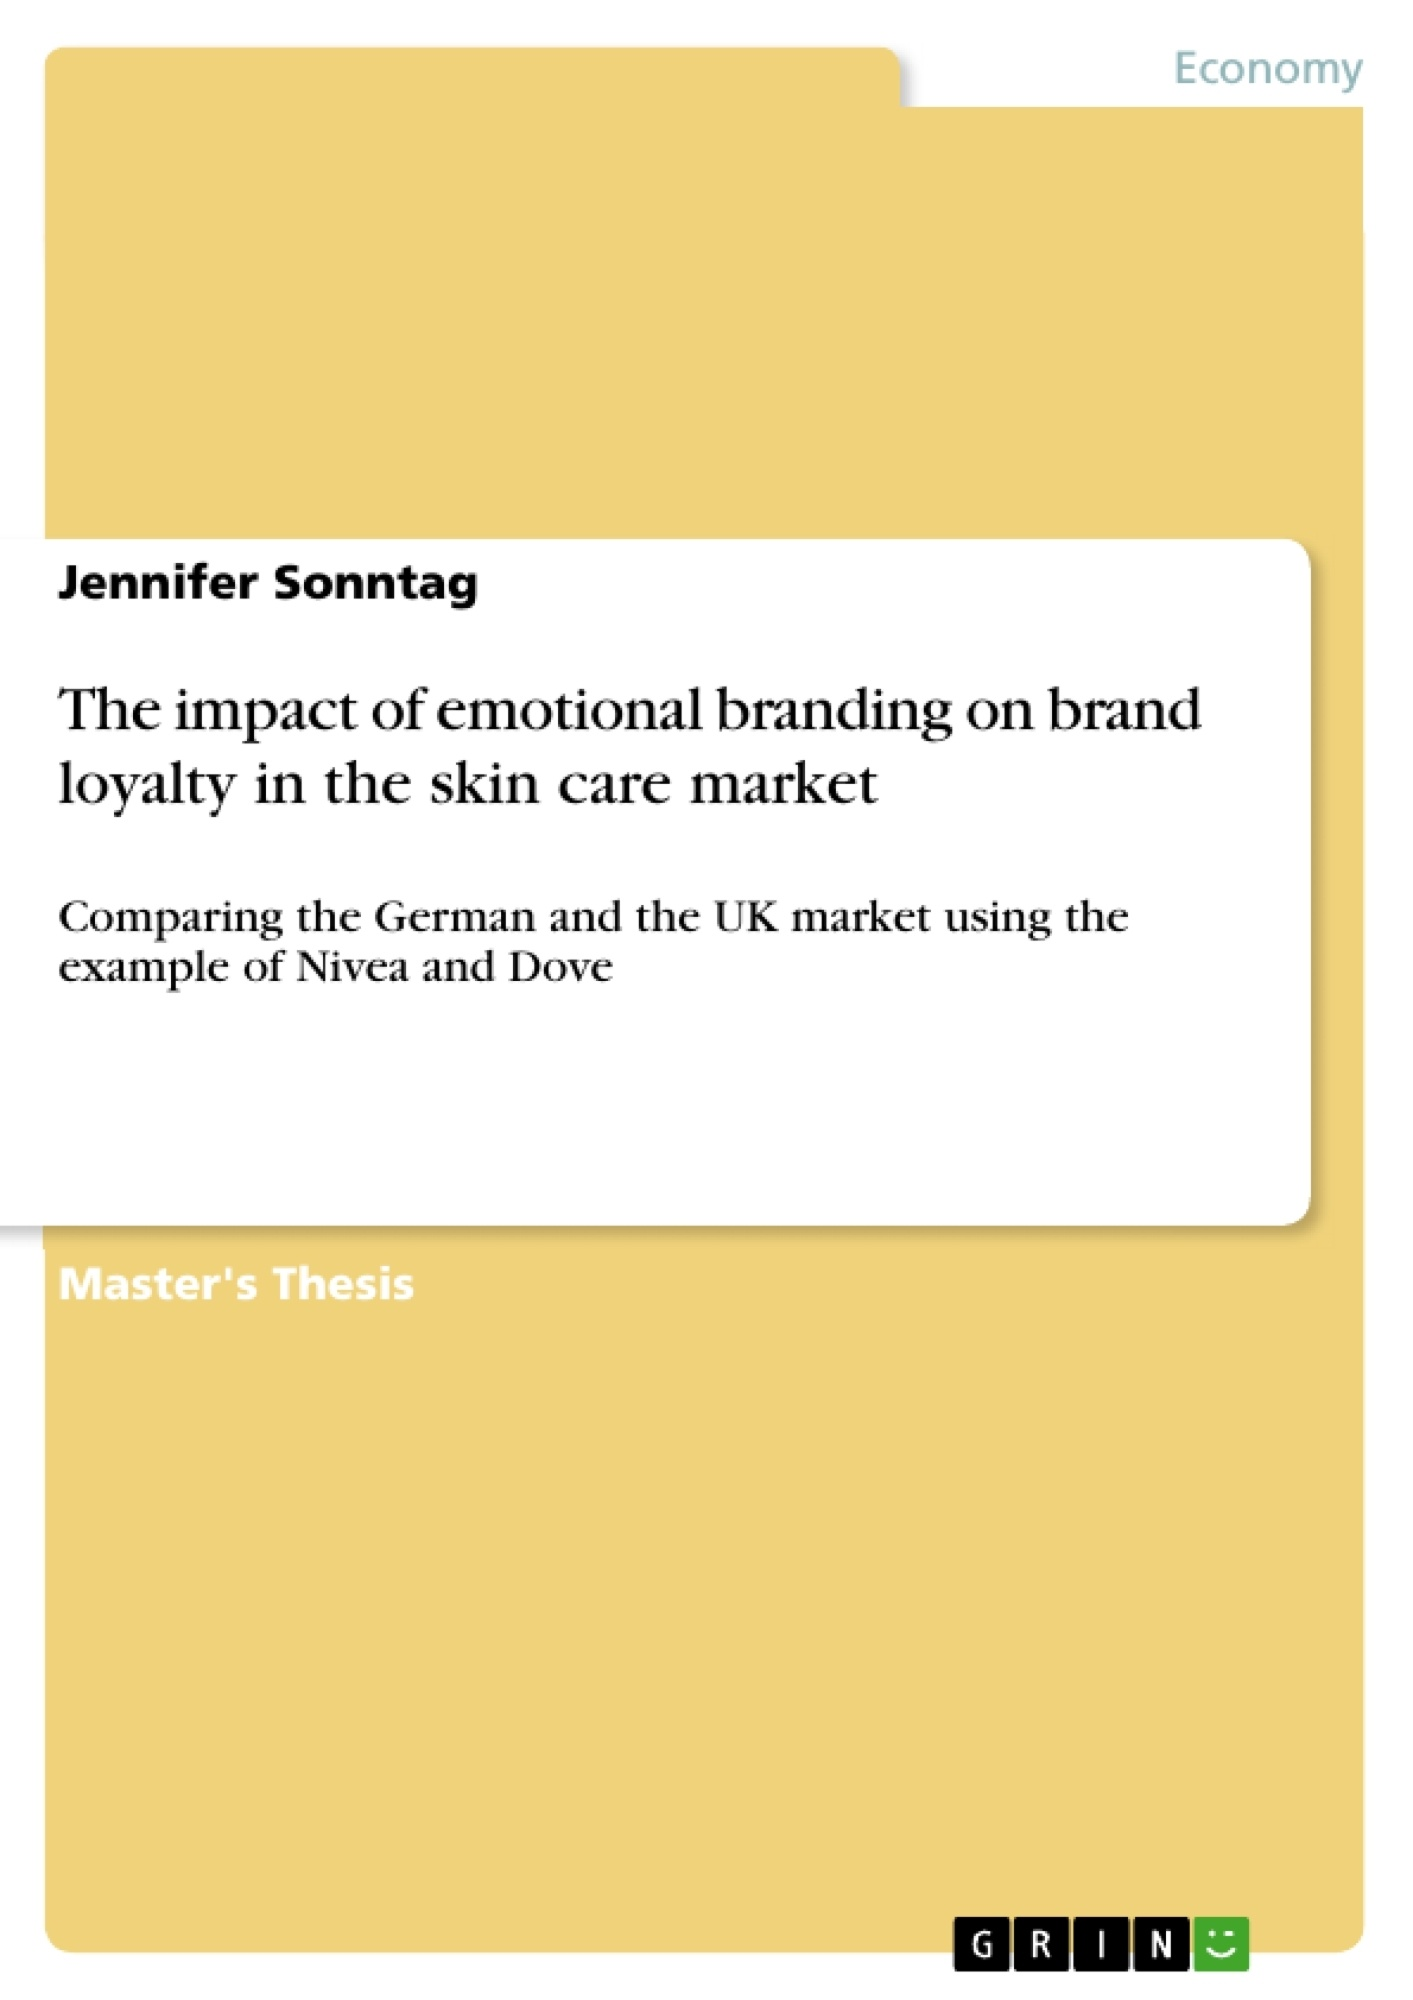 Title: The impact of emotional branding on brand loyalty in the skin care market